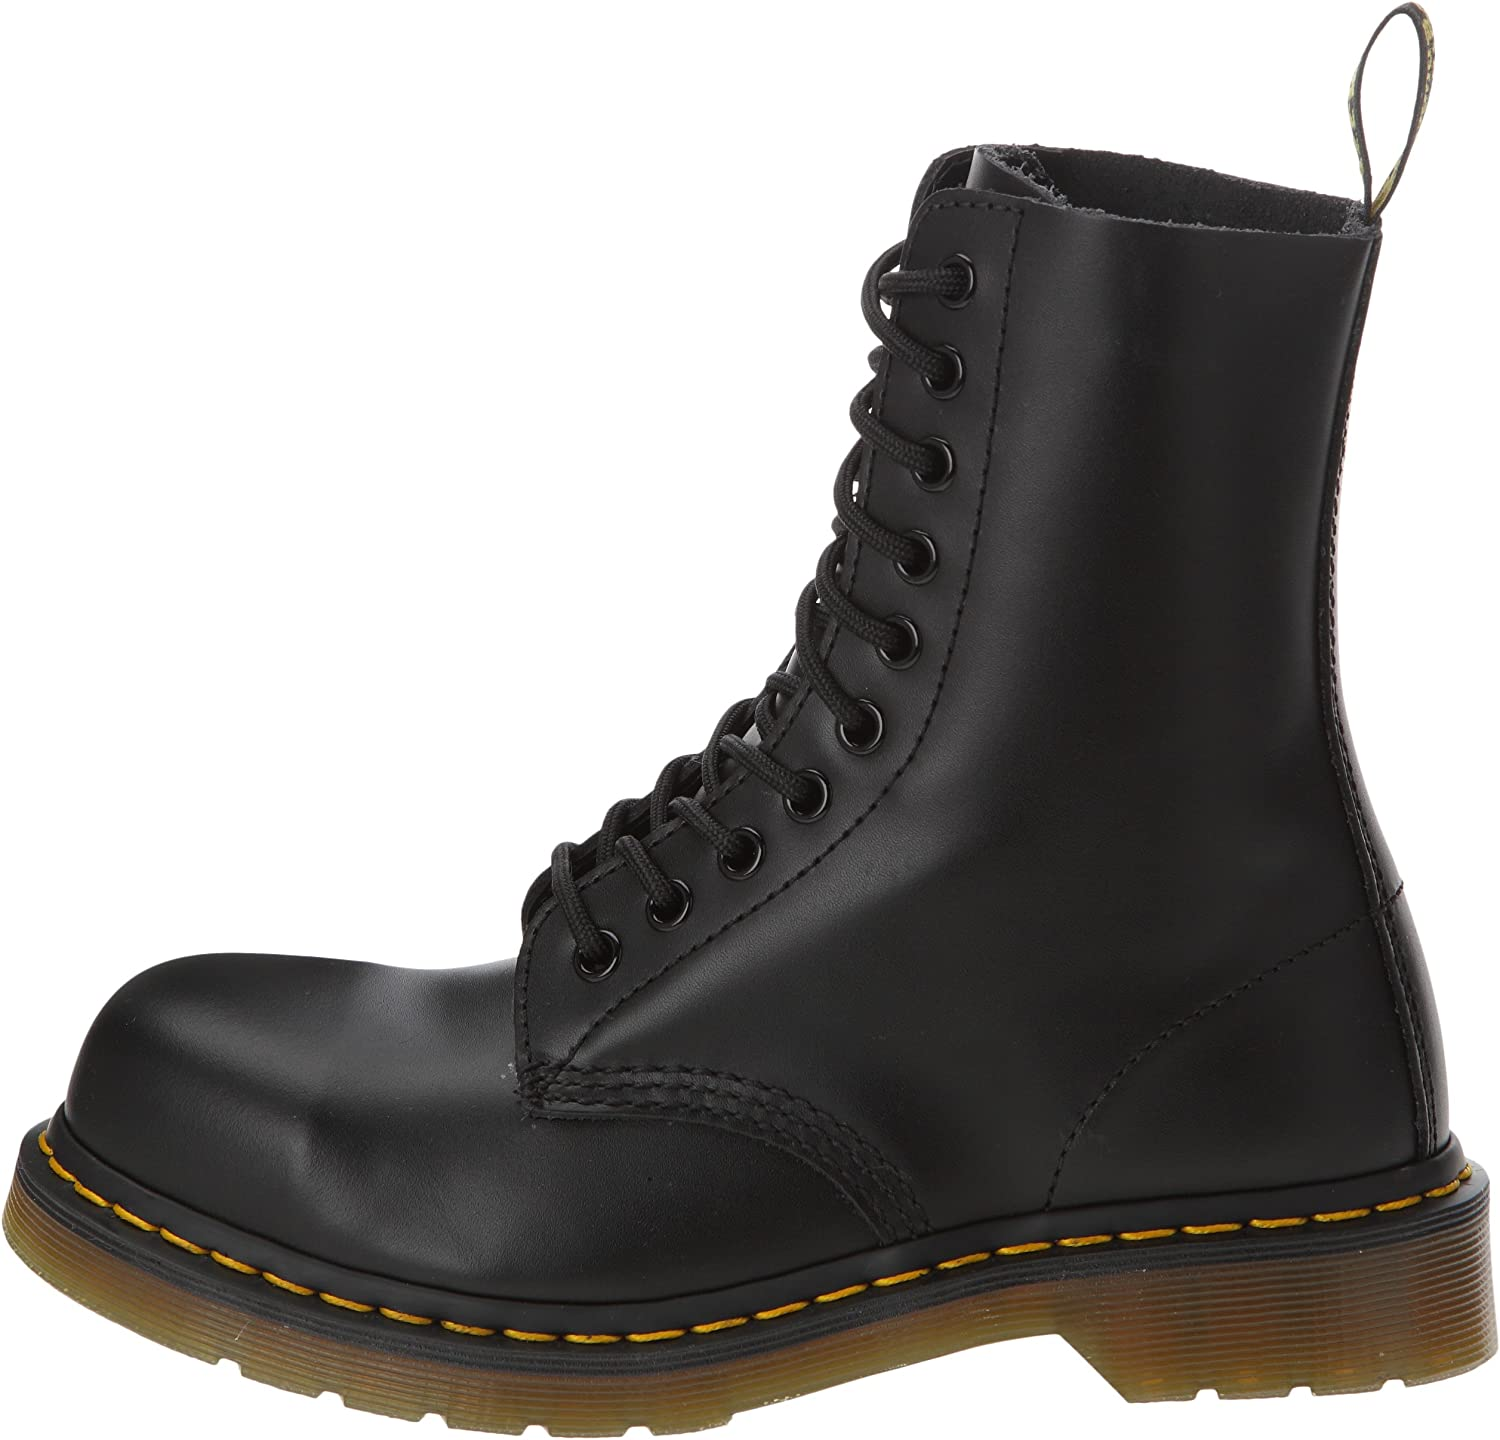 dr martins steel toe boots